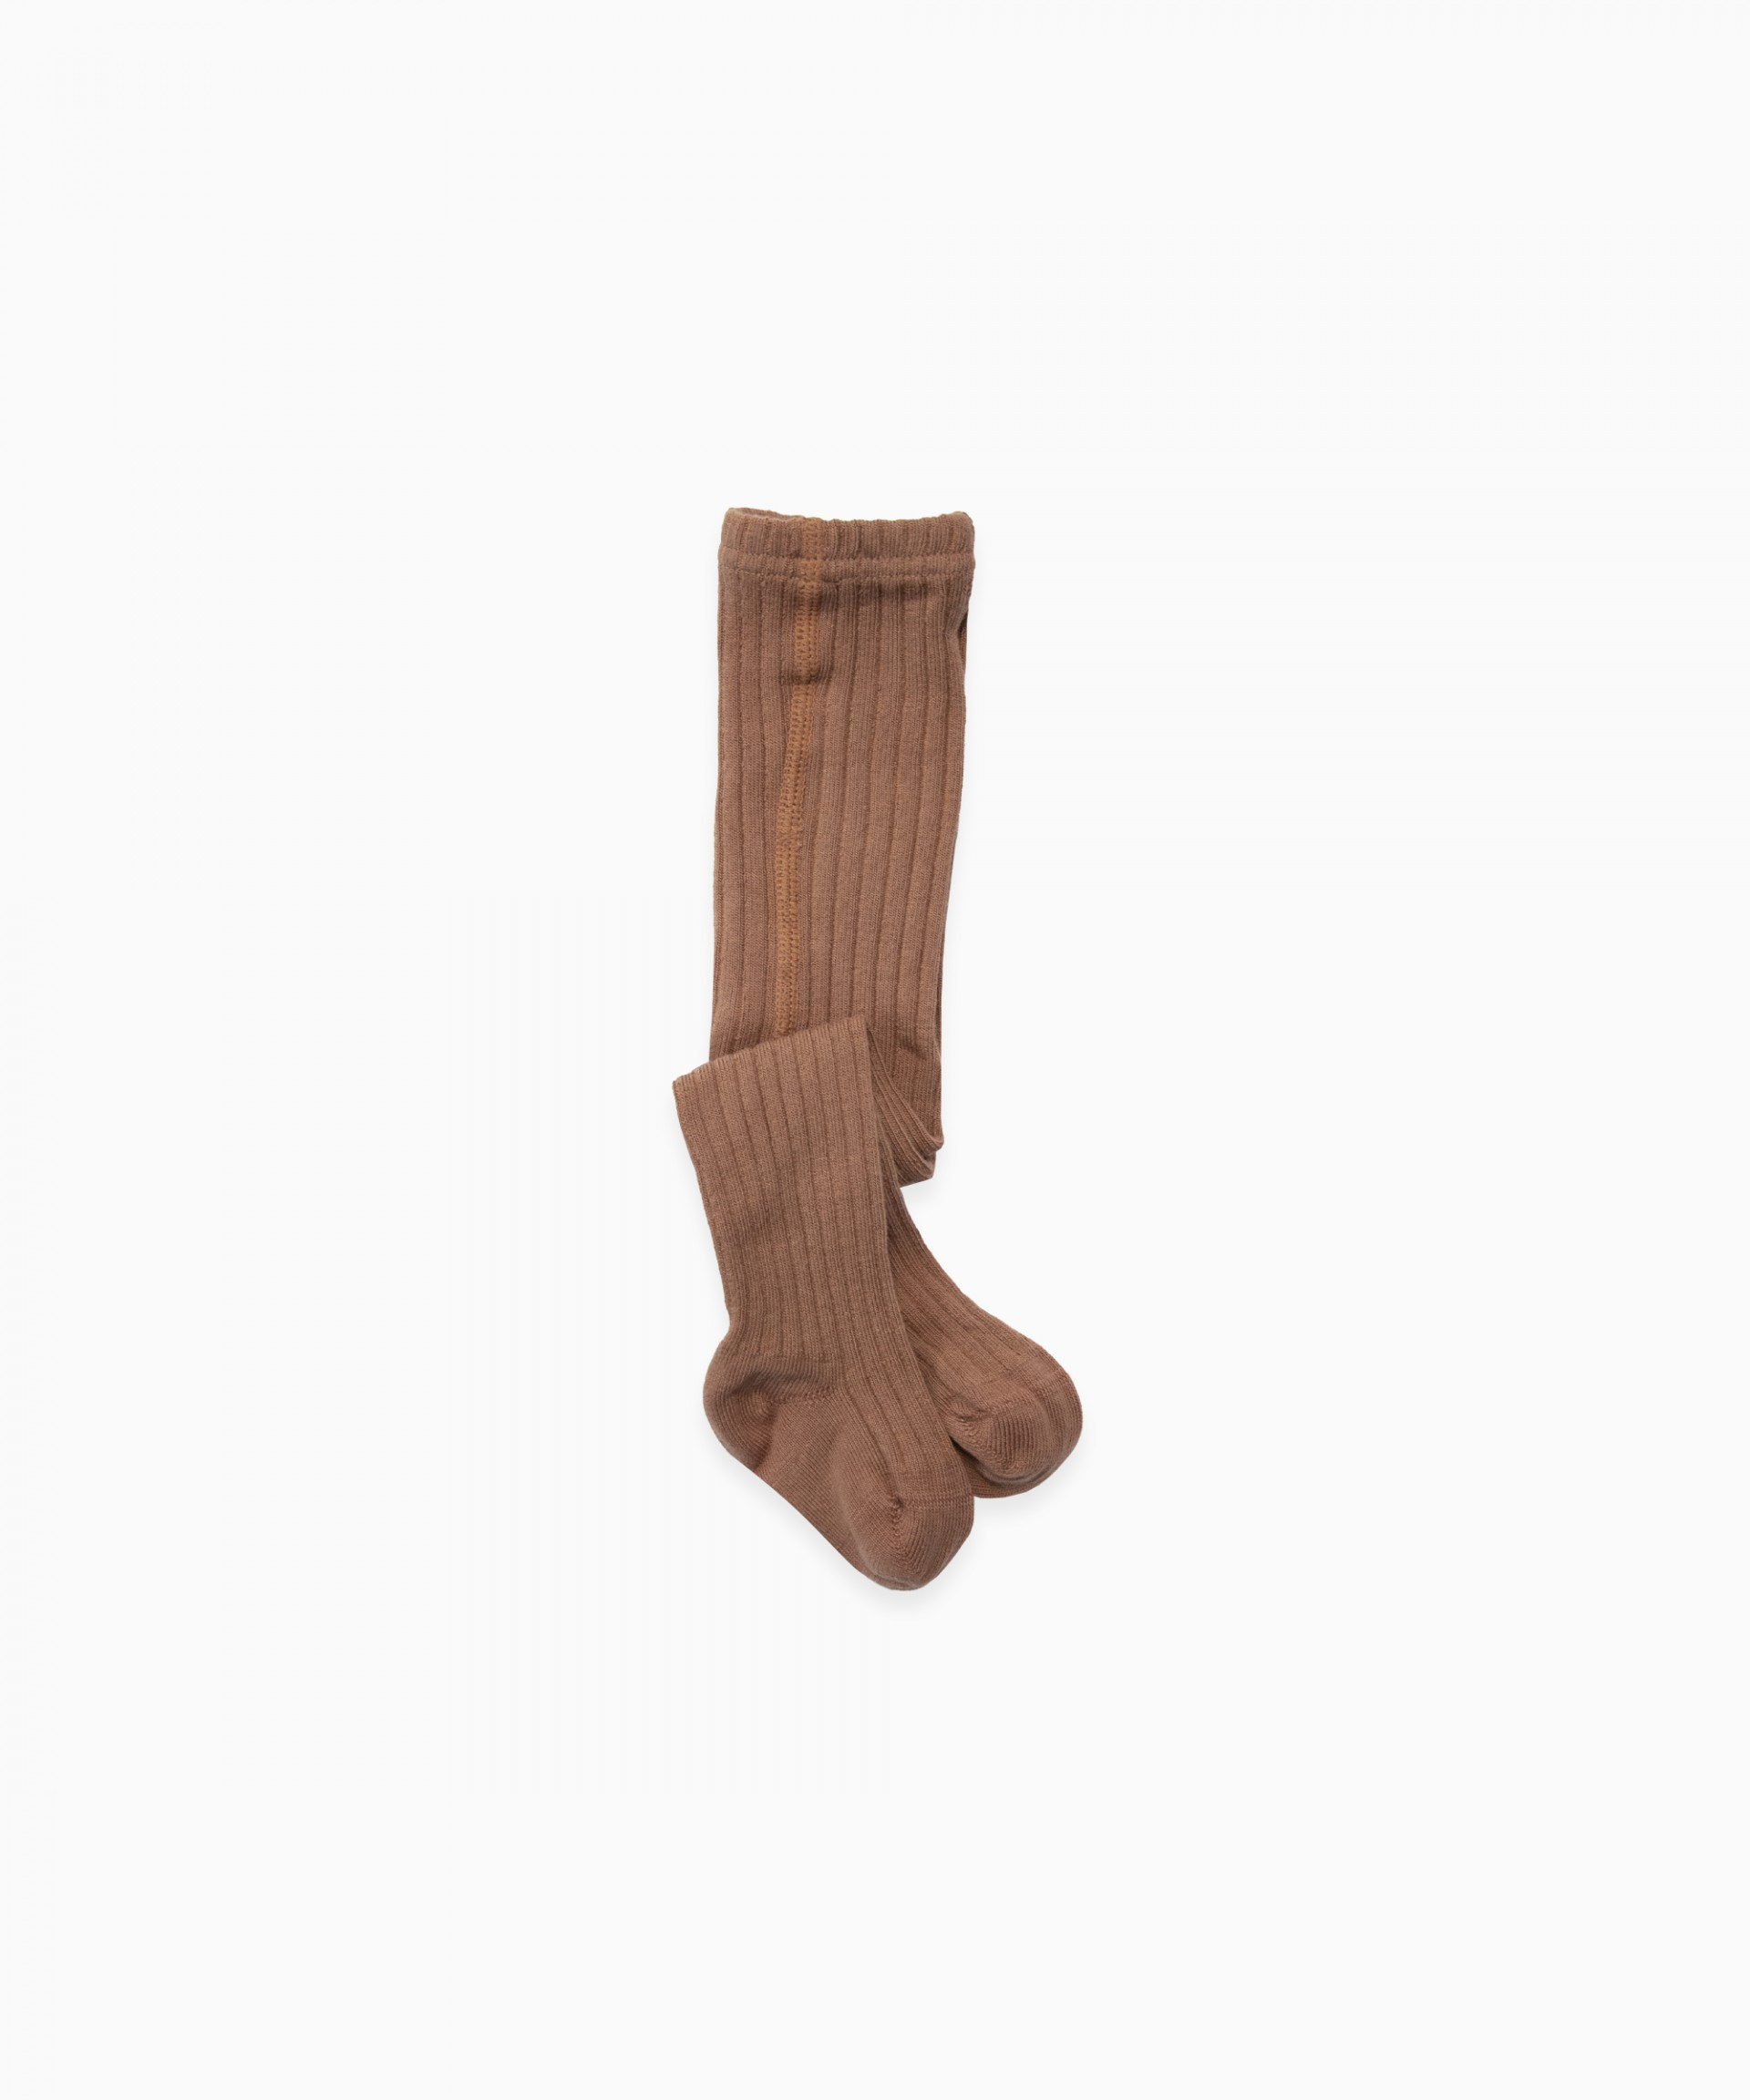 Collants com fibras recicladas | Woodwork